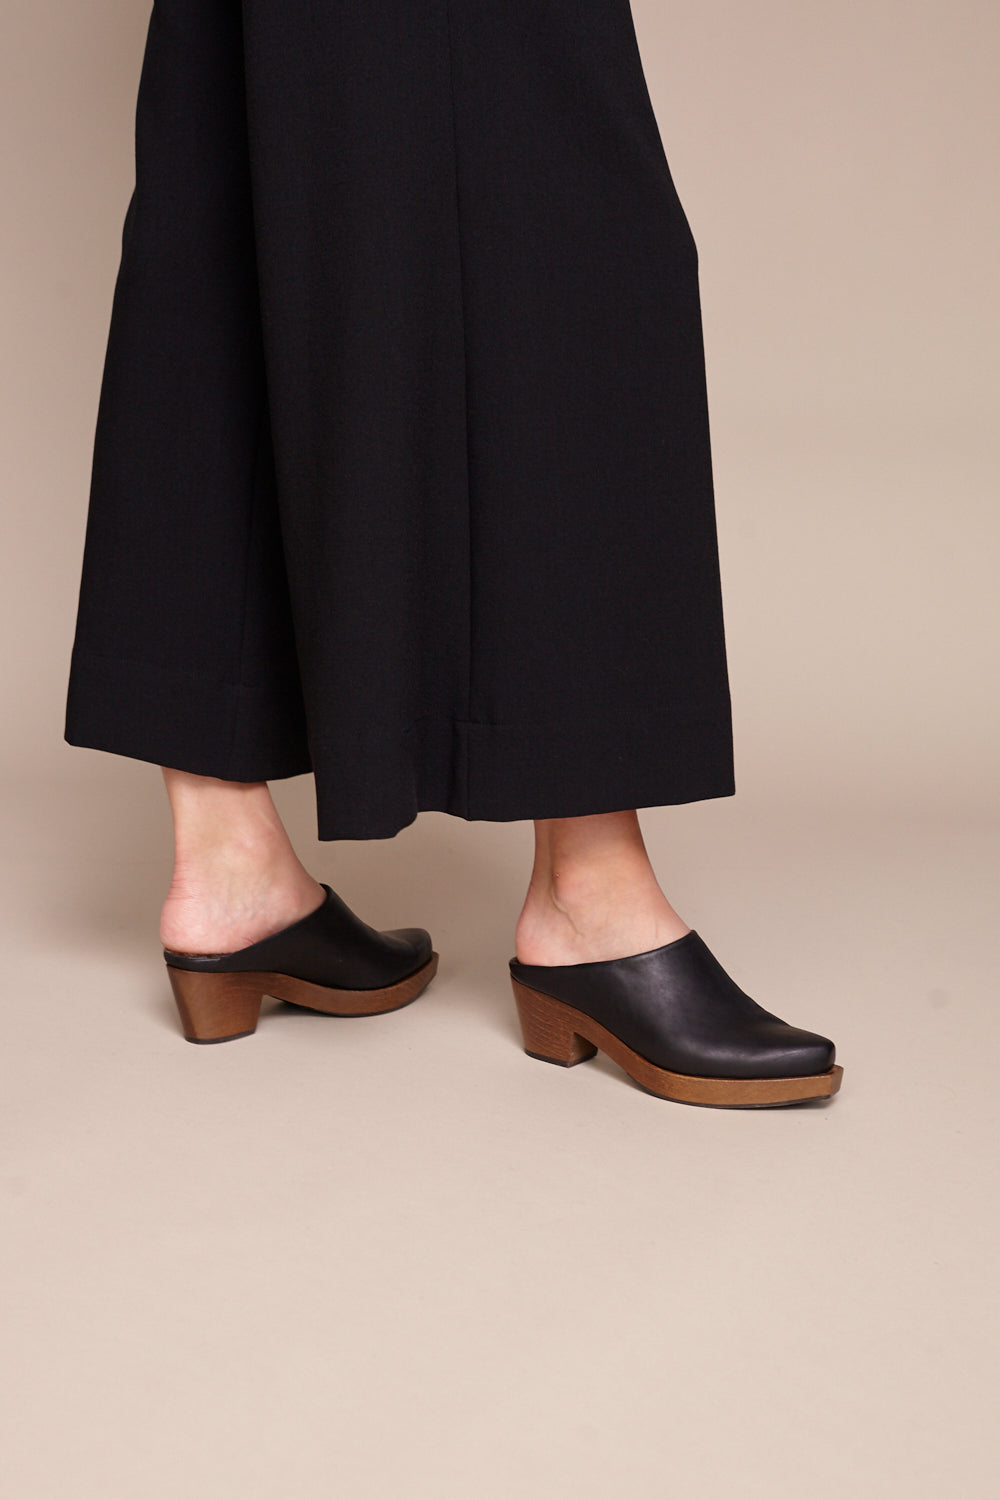 Kera Clog in Talco Black